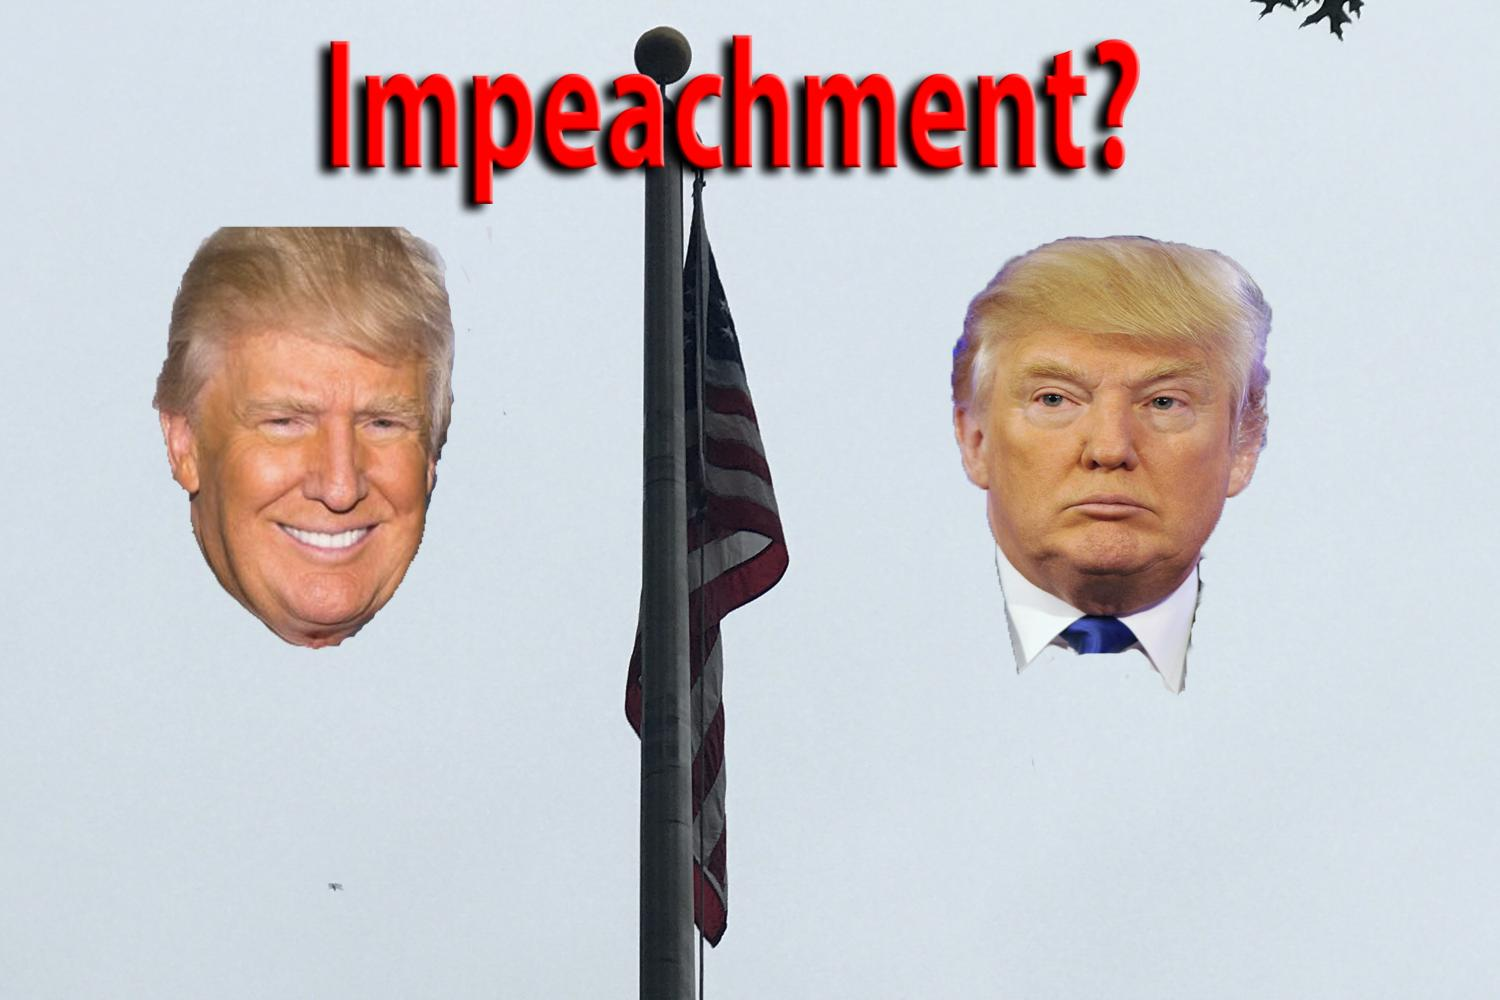 Impeachment?